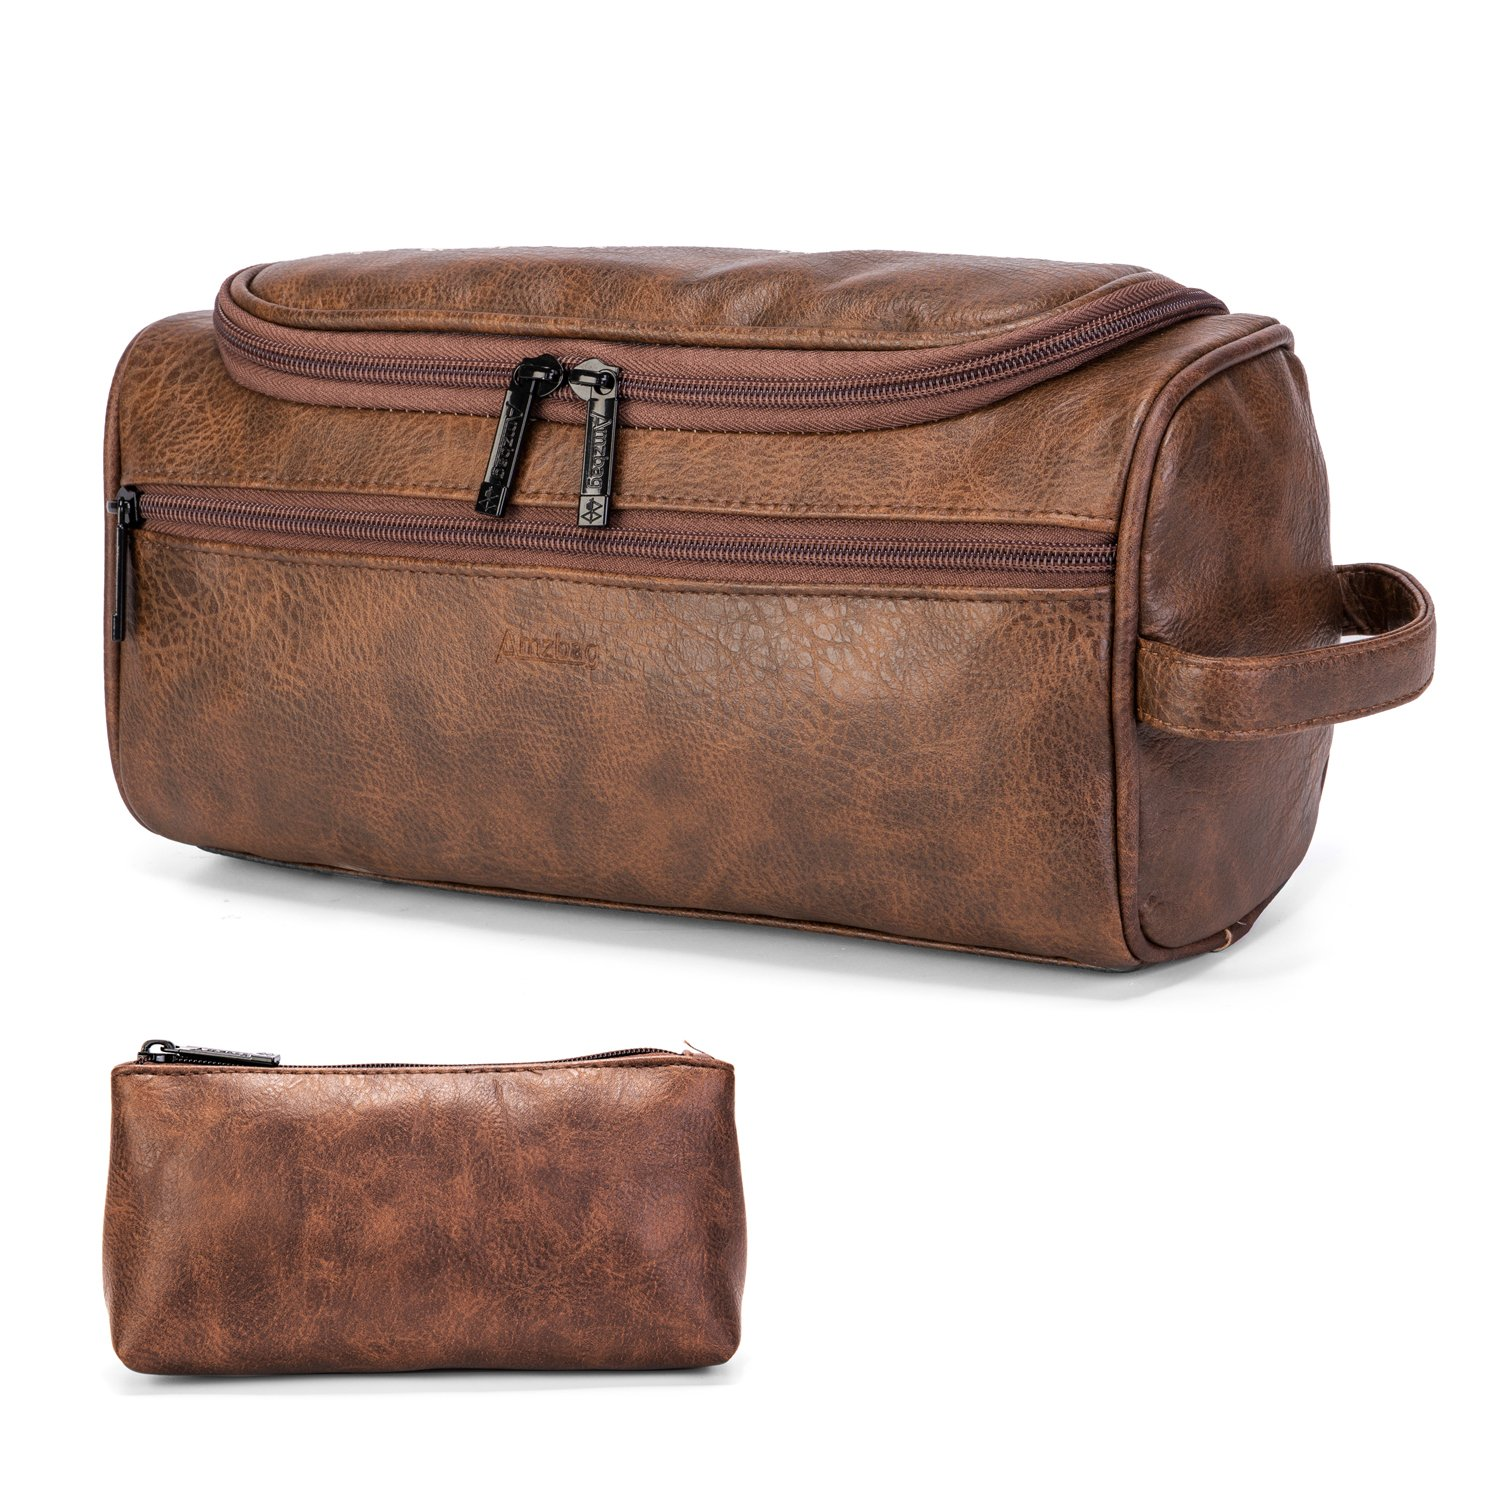 b55af6052d66 CoolBELL Leather Toiletry Bag Travel Toiletry Organizer Portable Hanging  Makeup Bag Dopp Kit   Shaving Cosmetic Bag for Men Women (Brown)